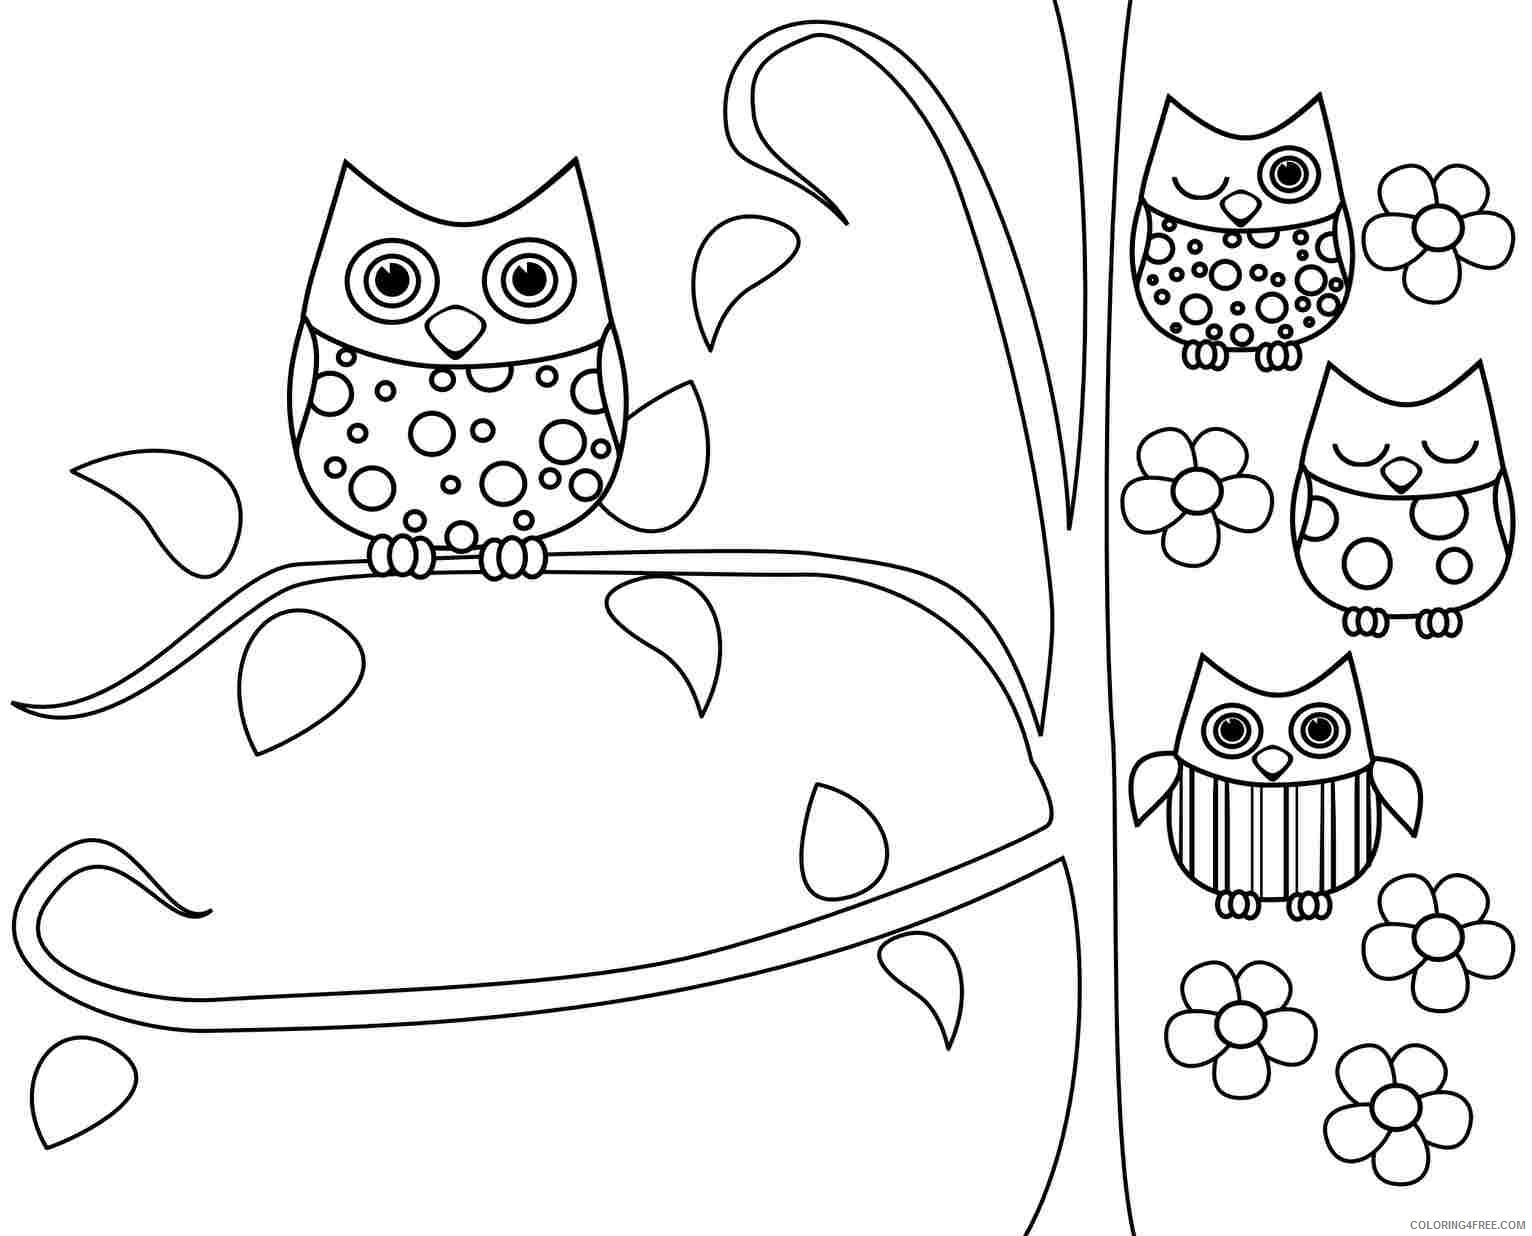 owl coloring pages printable for kids Coloring4free